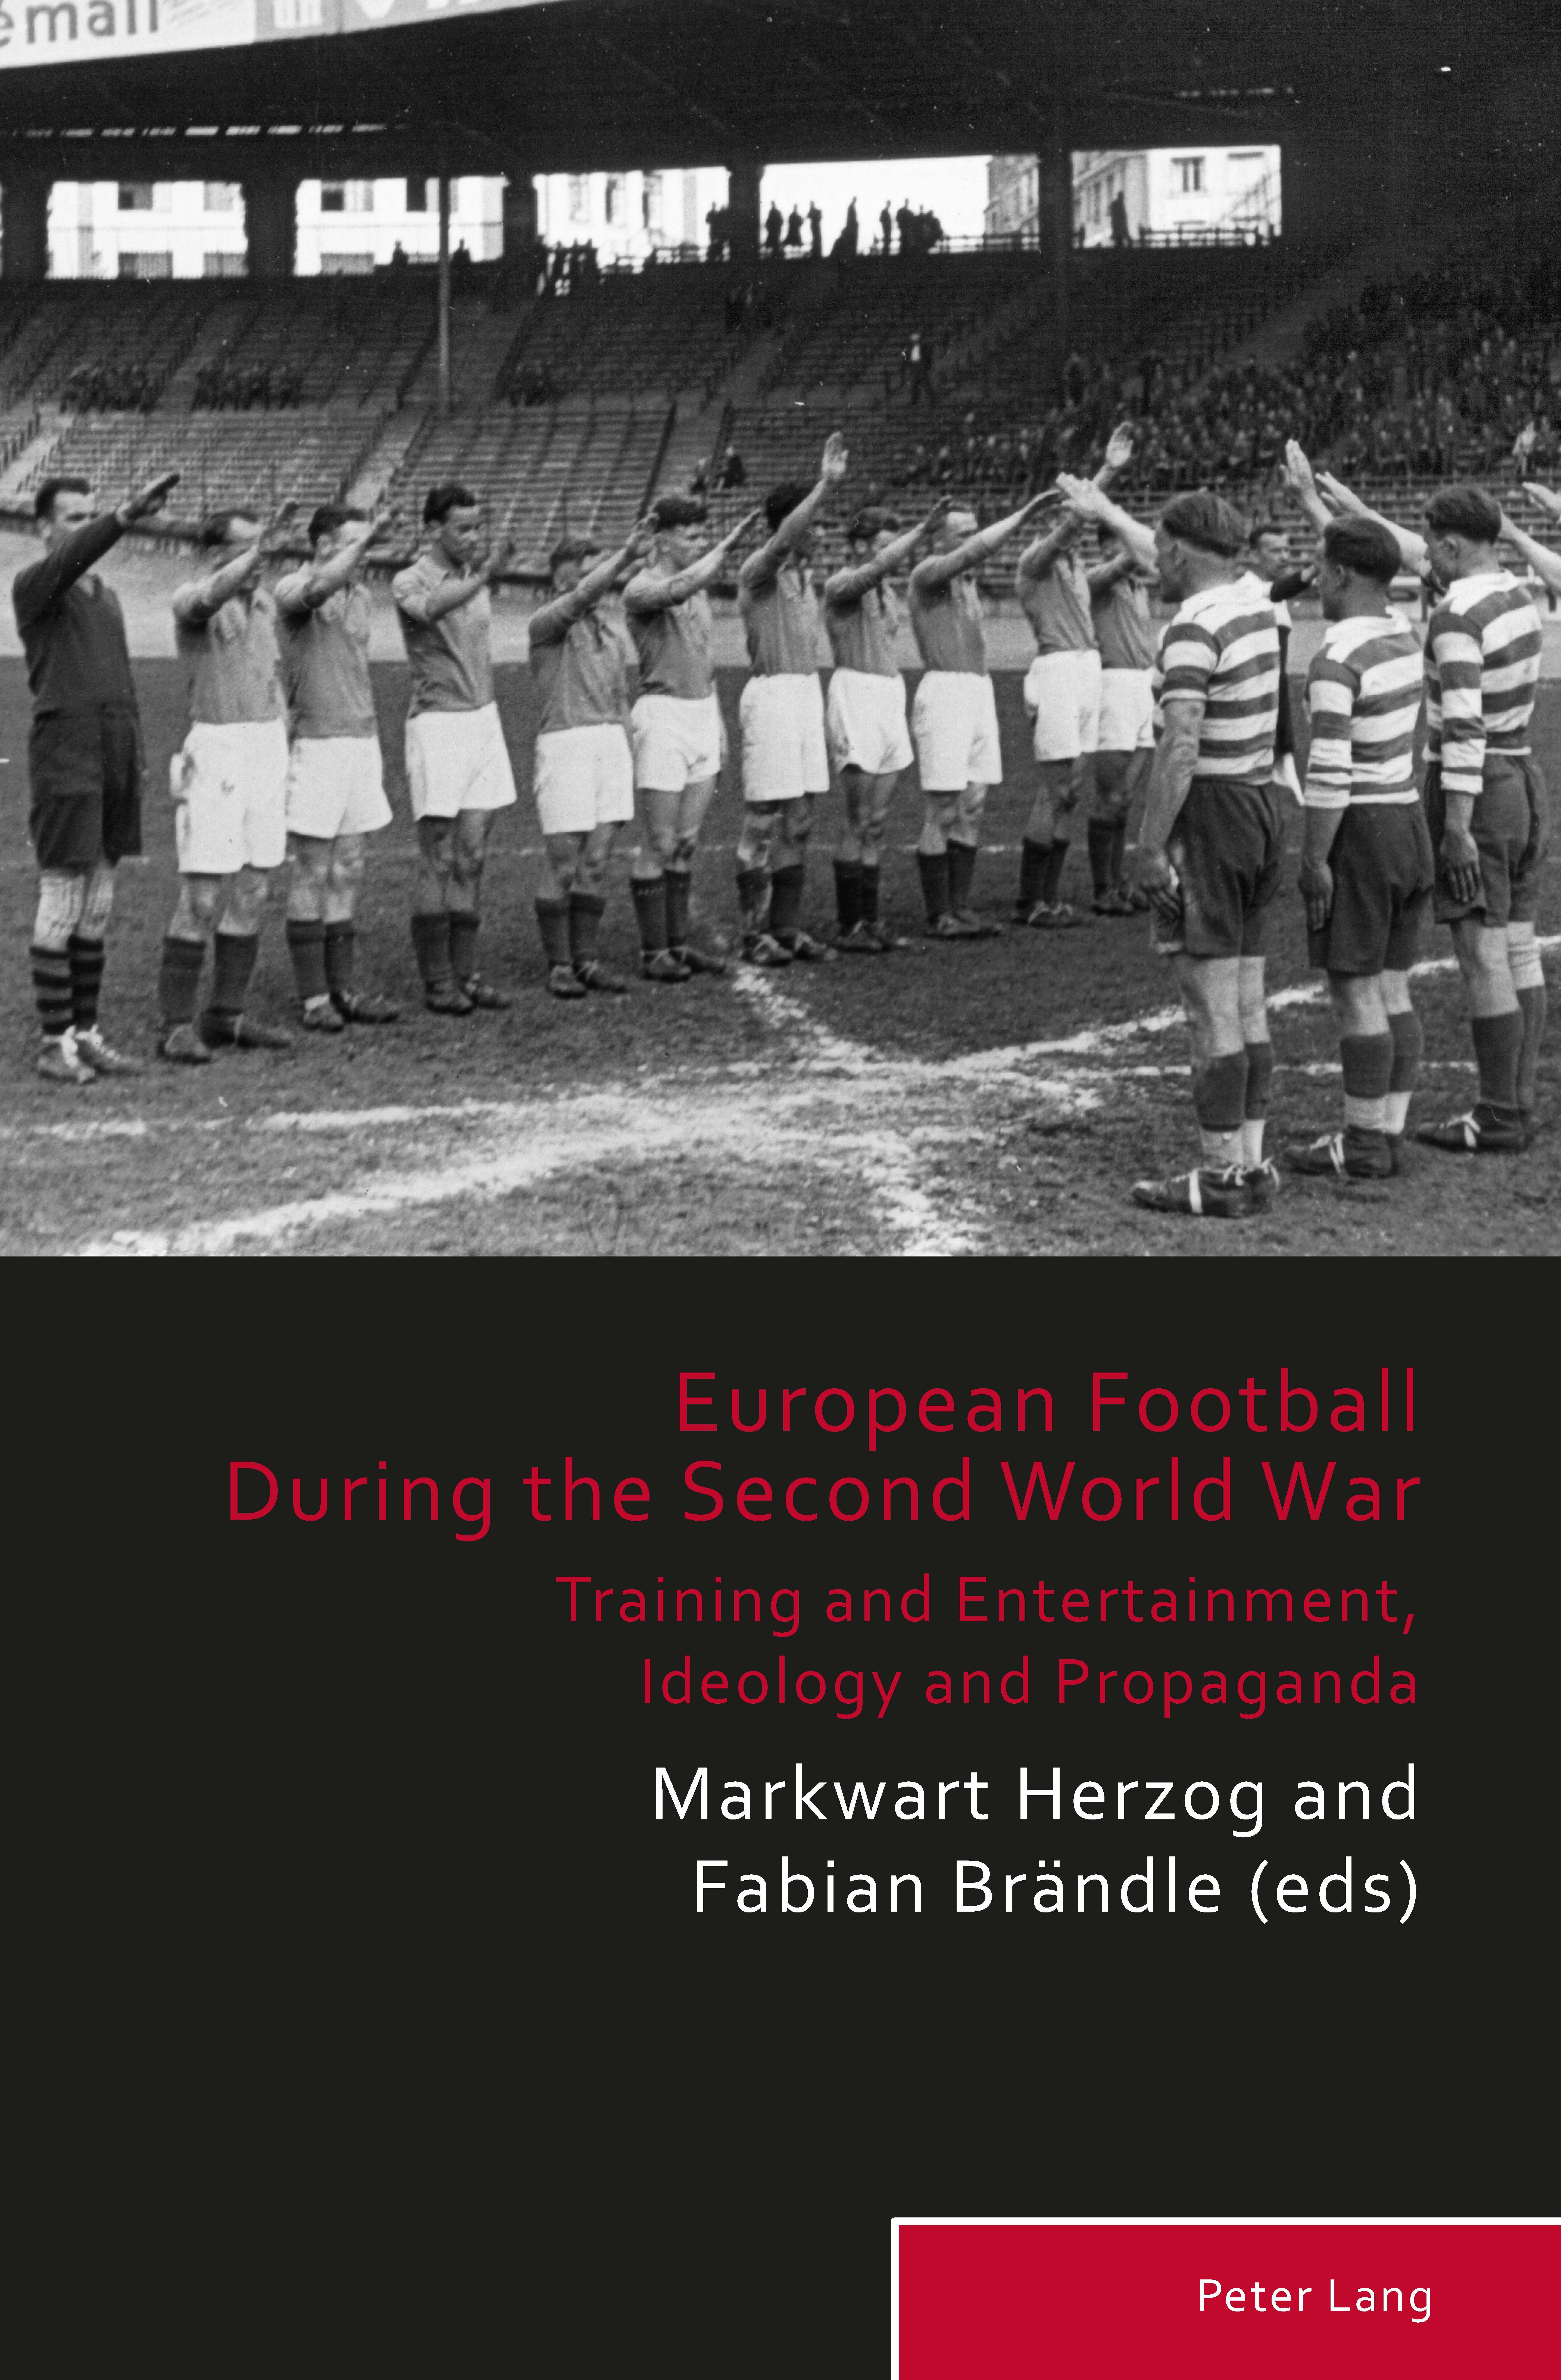 Buchcover European Football During the Second World War - Training and Entertainment, Ideology and Propaganda von